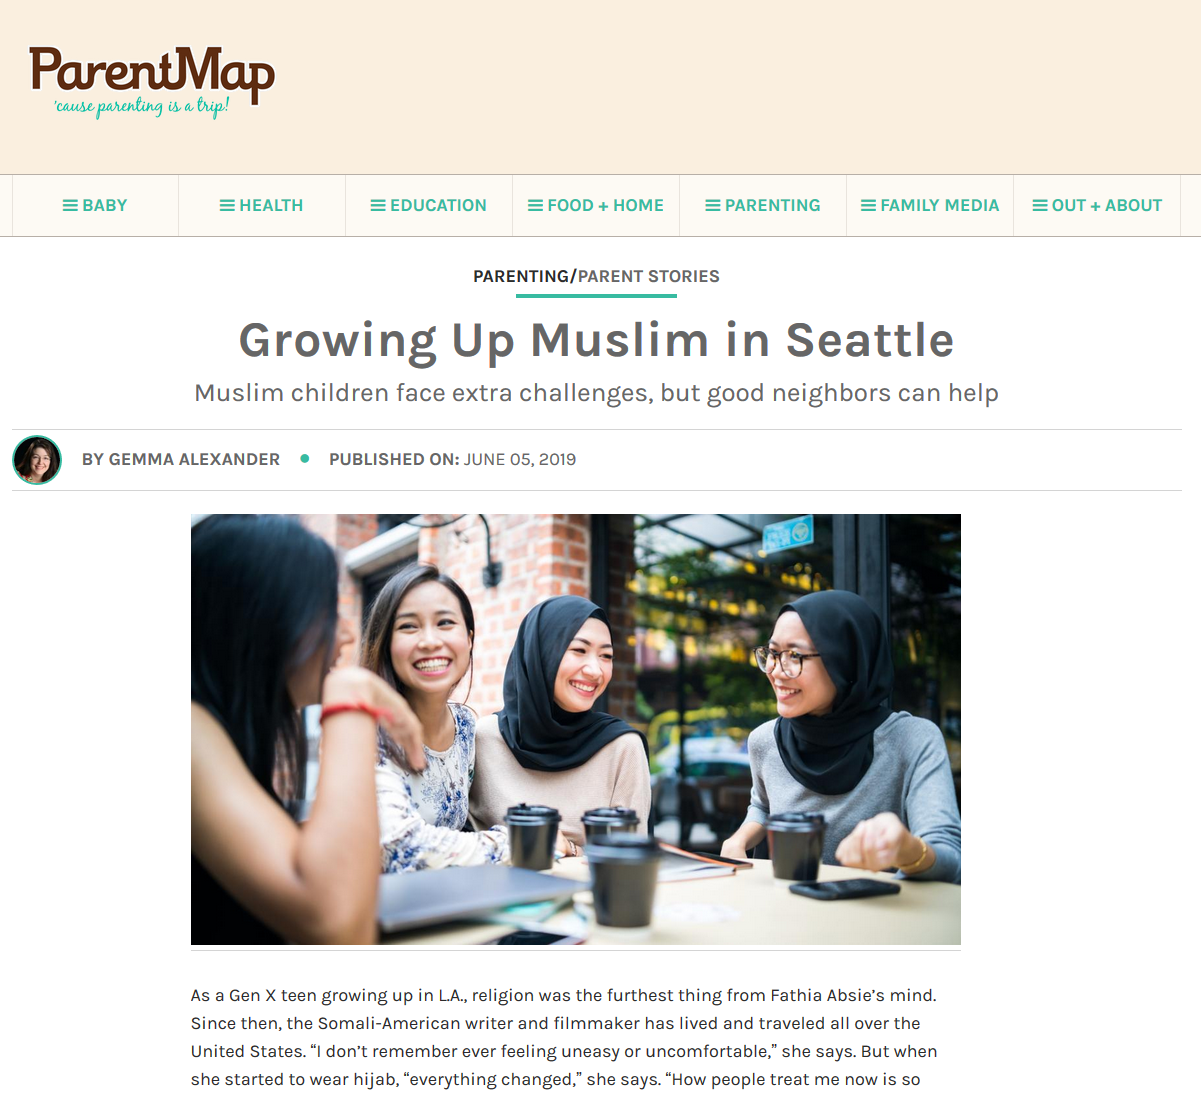 "Growing Up Muslim in Seattle - 6/5/2019: As a Gen X teen growing up in L.A., religion was the furthest thing from Fathia Absie's mind. Since then, the Somali-American writer and filmmaker has lived and traveled all over the United States. ""I don't remember ever feeling uneasy or uncomfortable,"" she says. But when she started to wear hijab, ""everything changed,"" she says. ""How people treat me now is so different."""